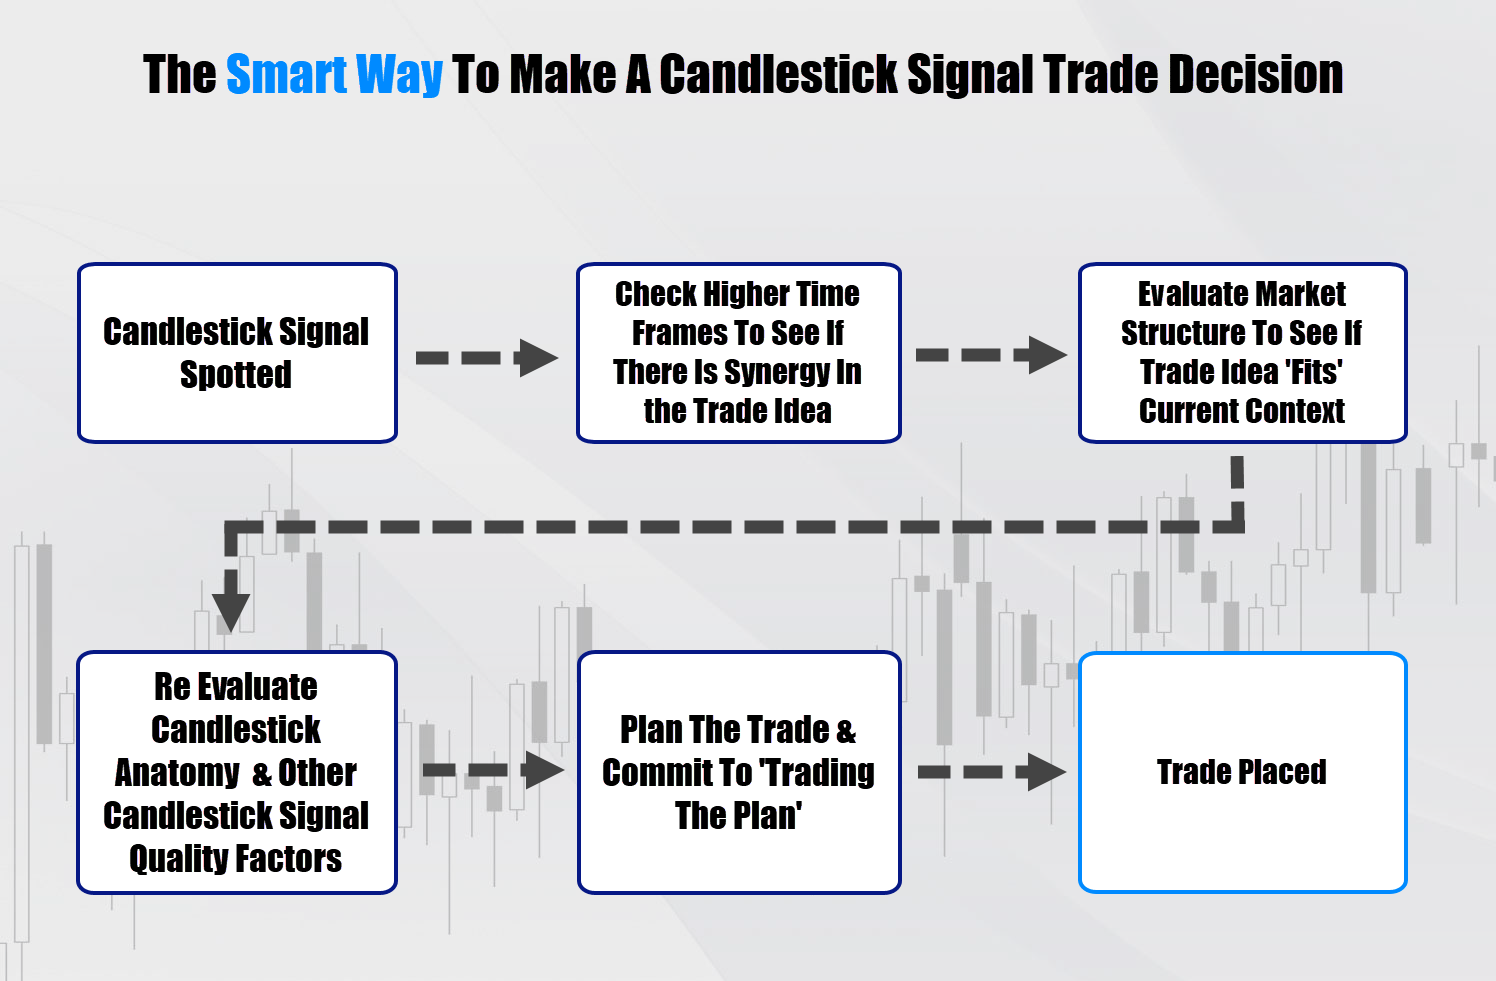 candlestick patterns decision making process table - the right way